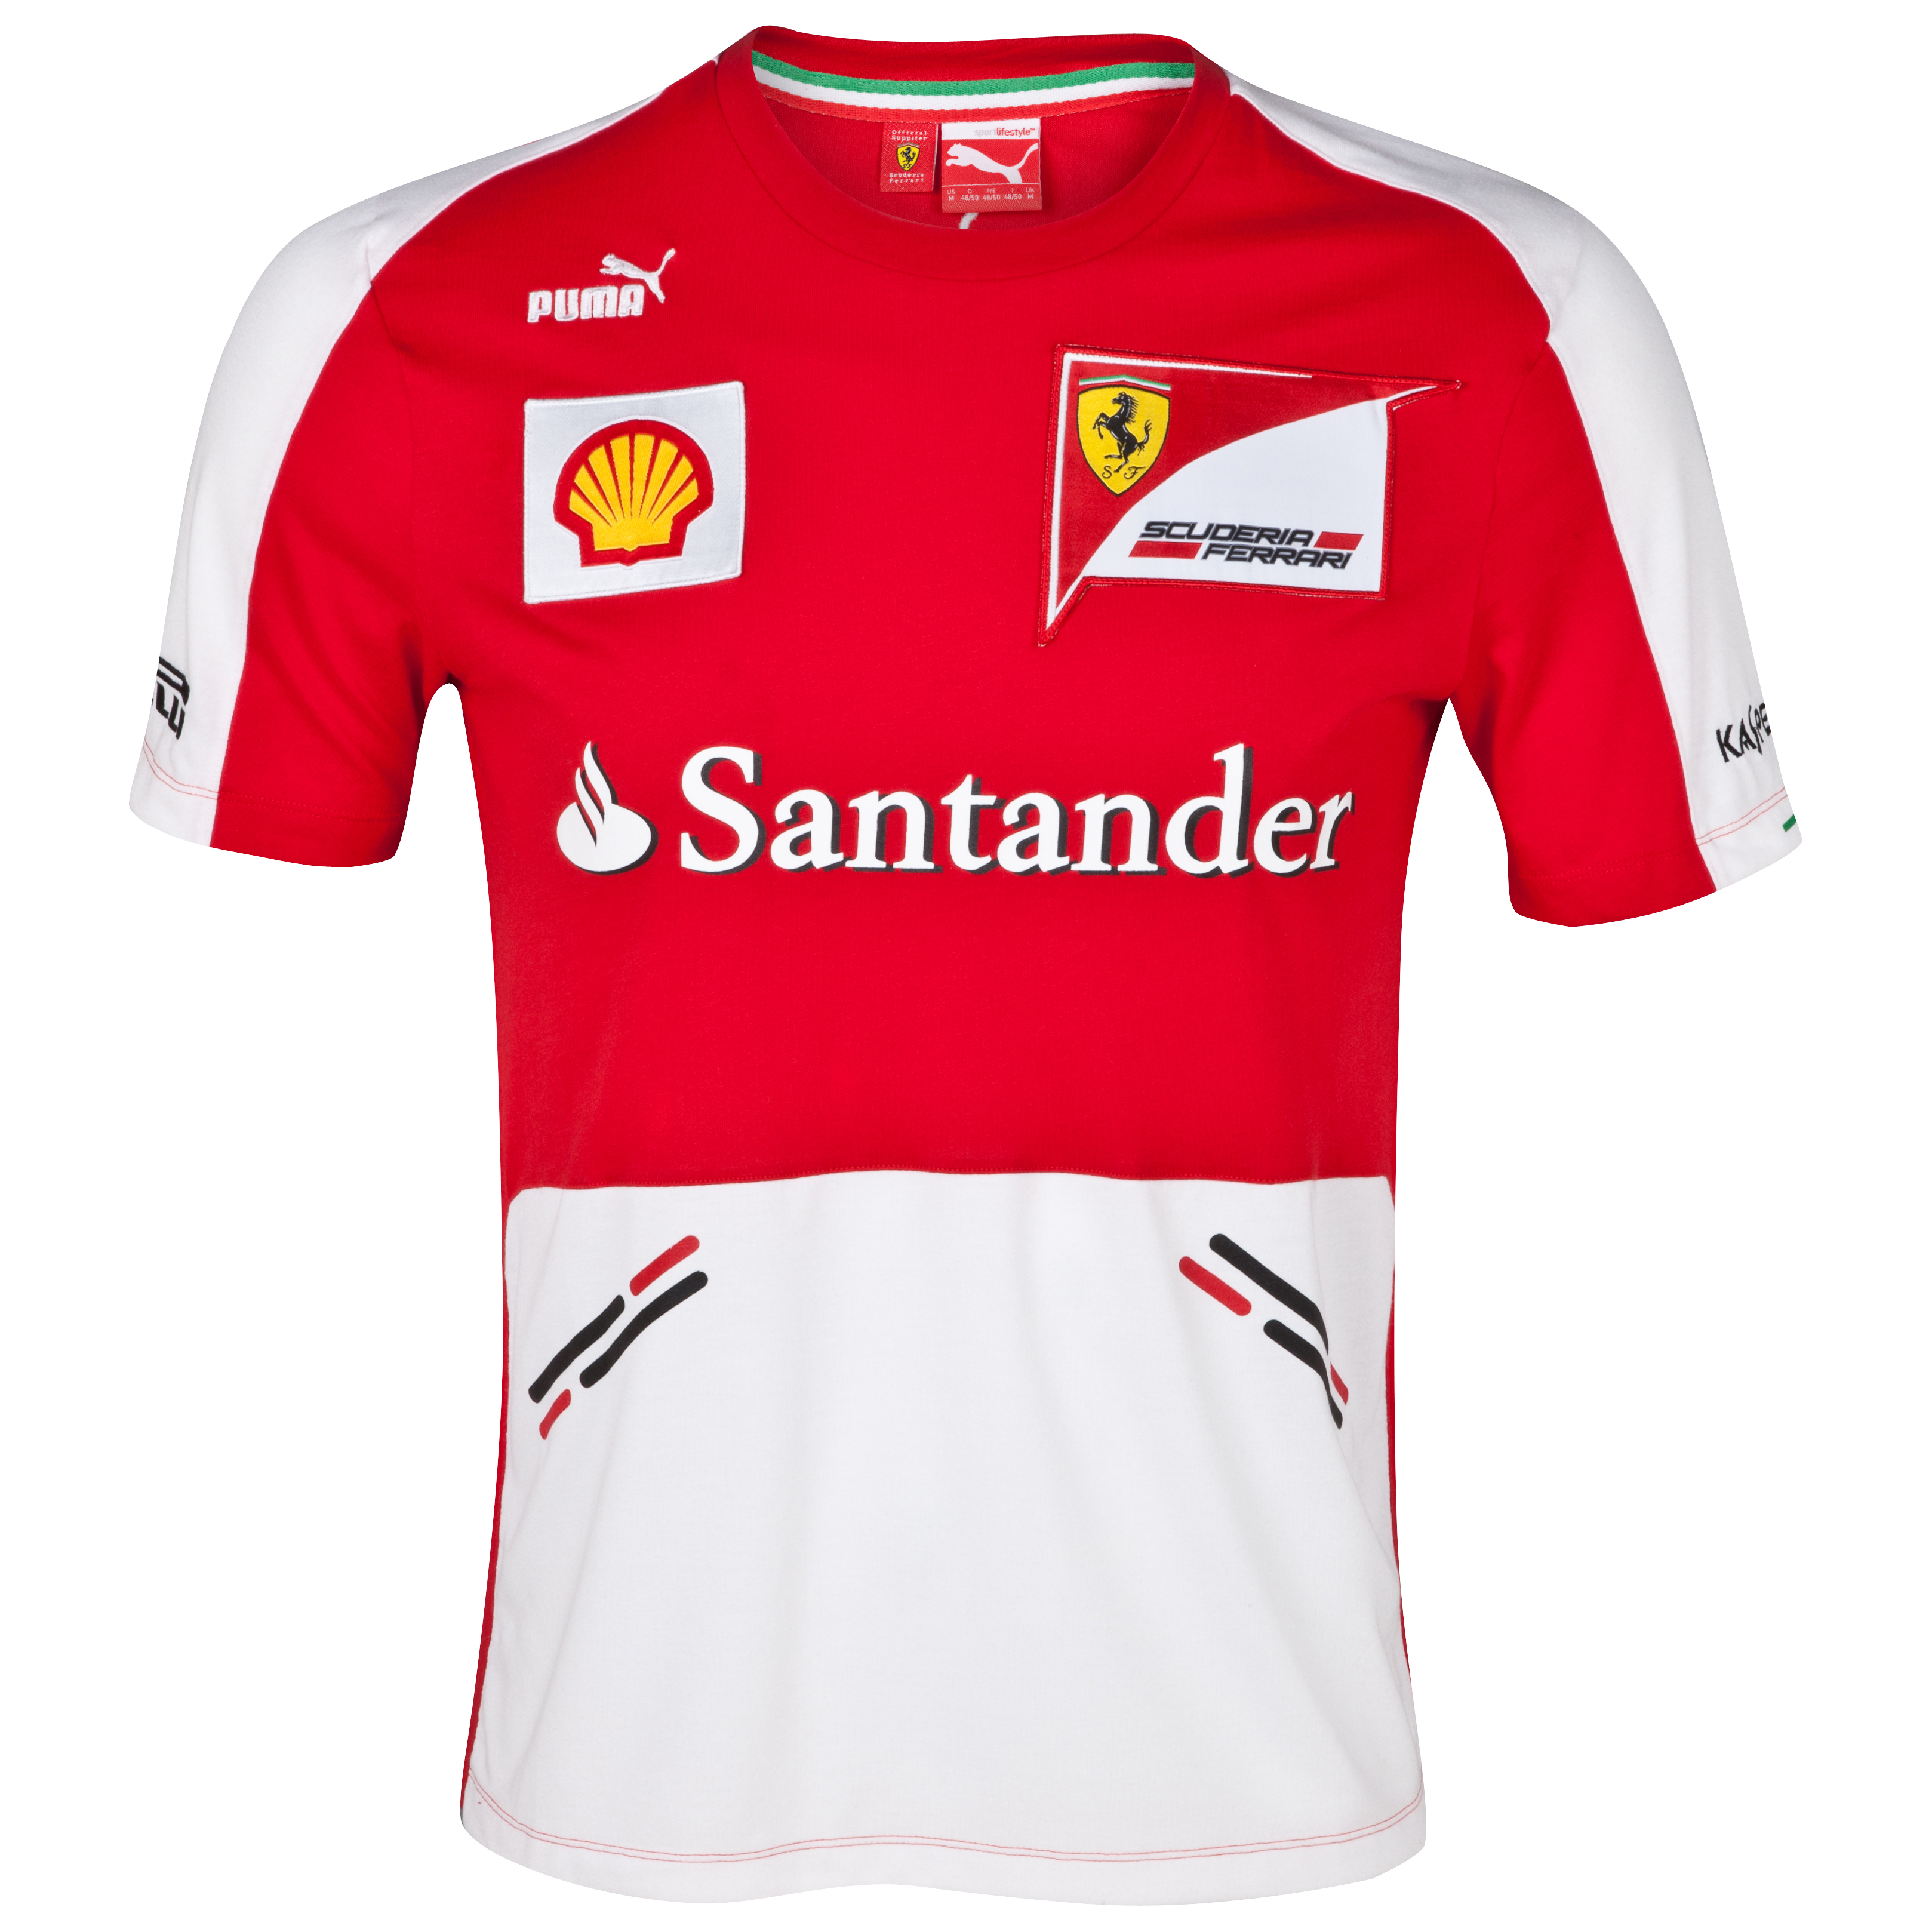 Scuderia Ferrari 2013 Team T-Shirt